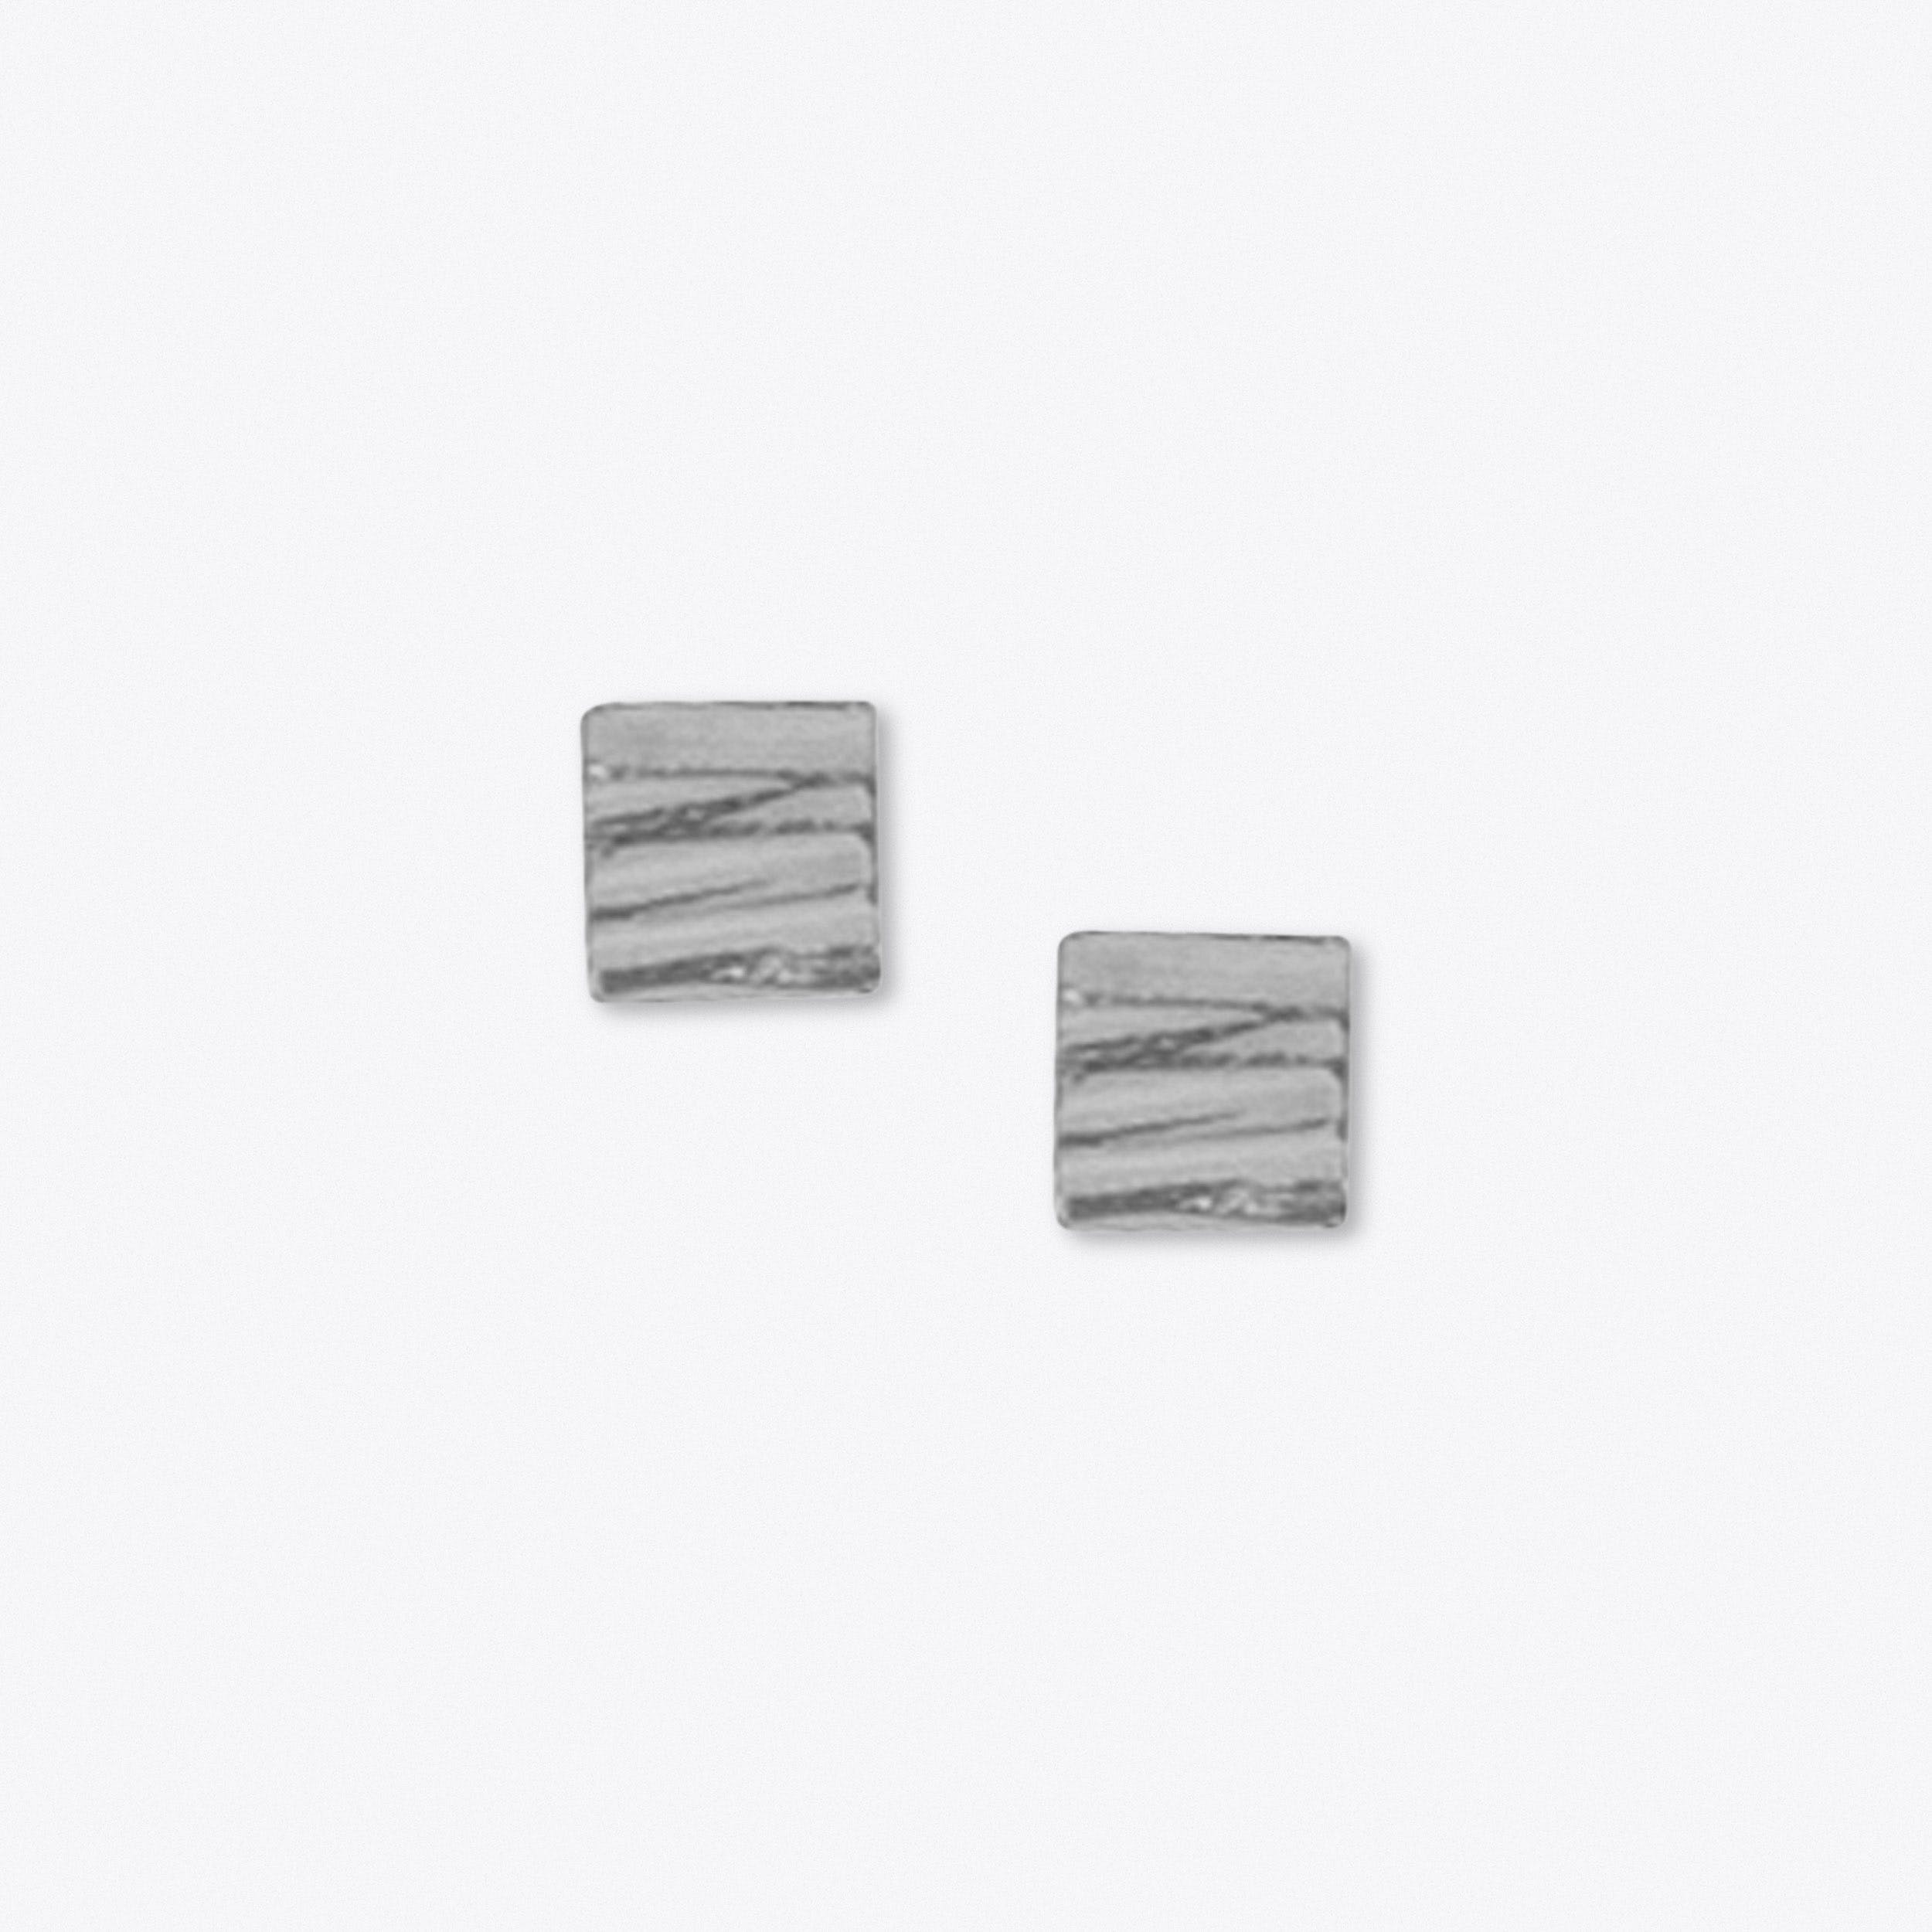 Allied Square Stud in Silver